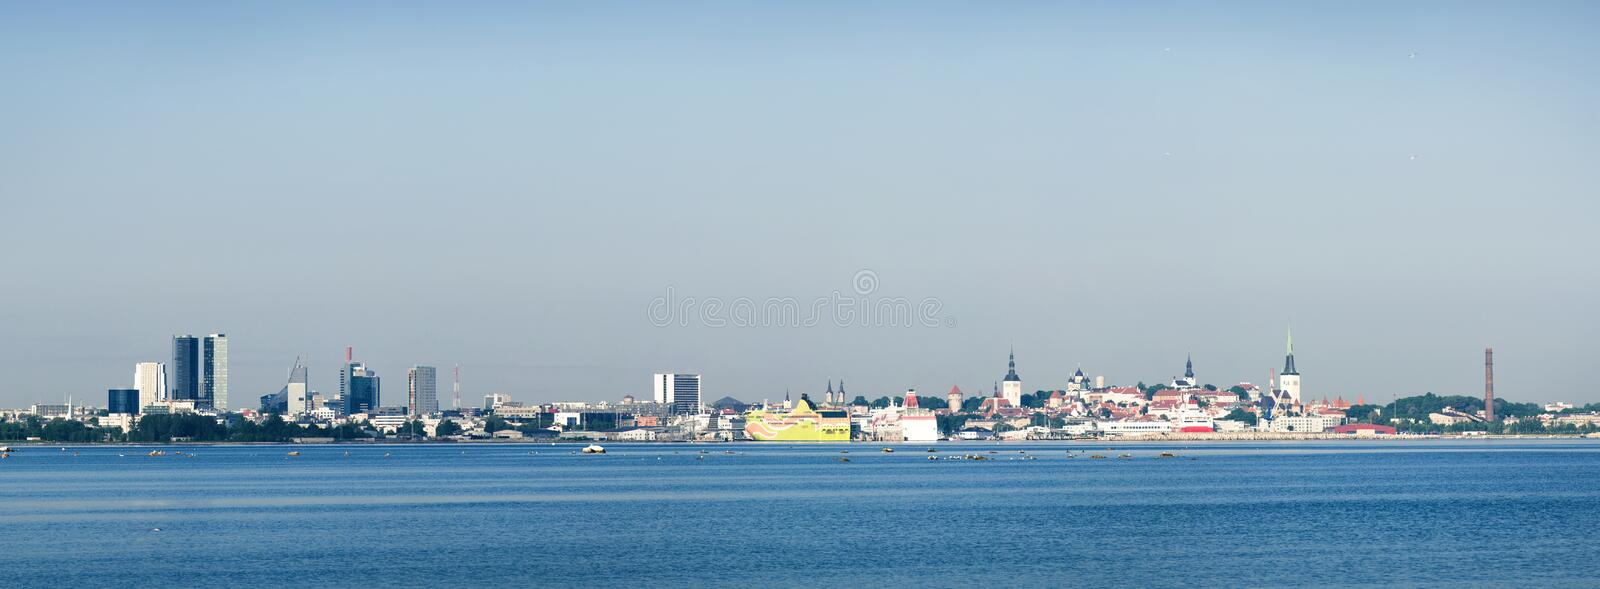 Download Panoramic view of Tallinn stock image. Image of estonia - 20536793